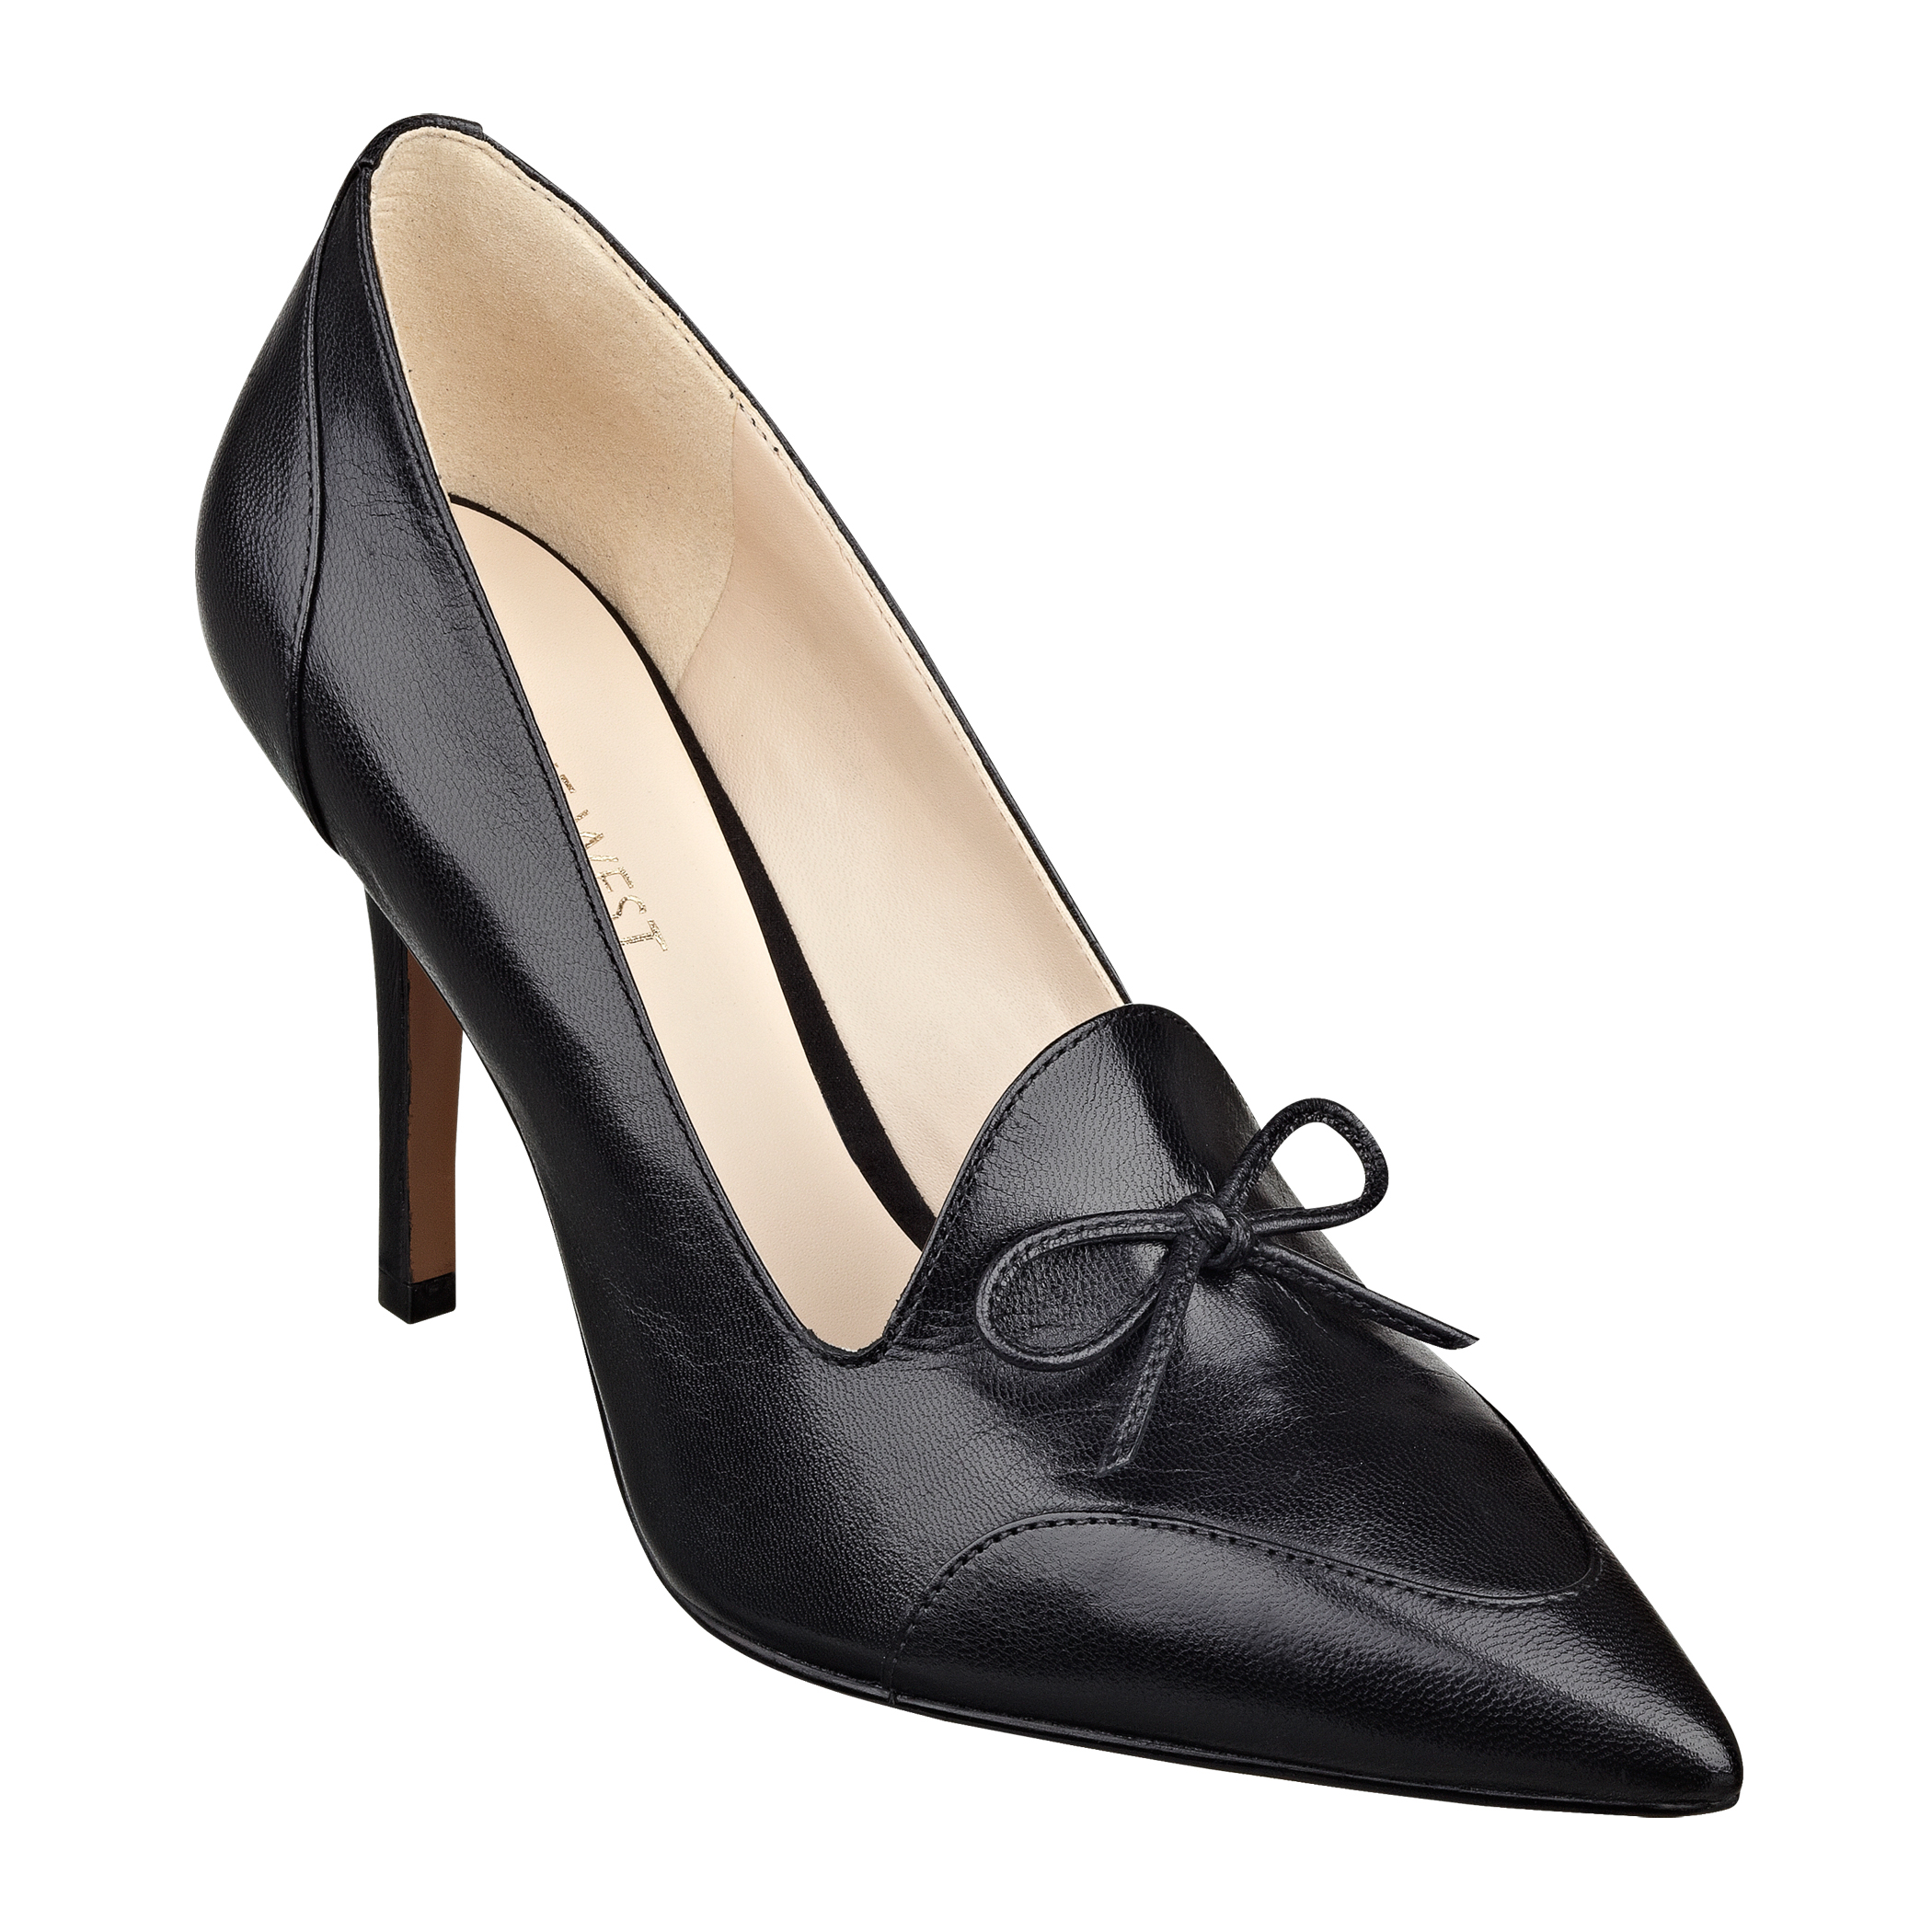 Bally Shoes For Sale Online